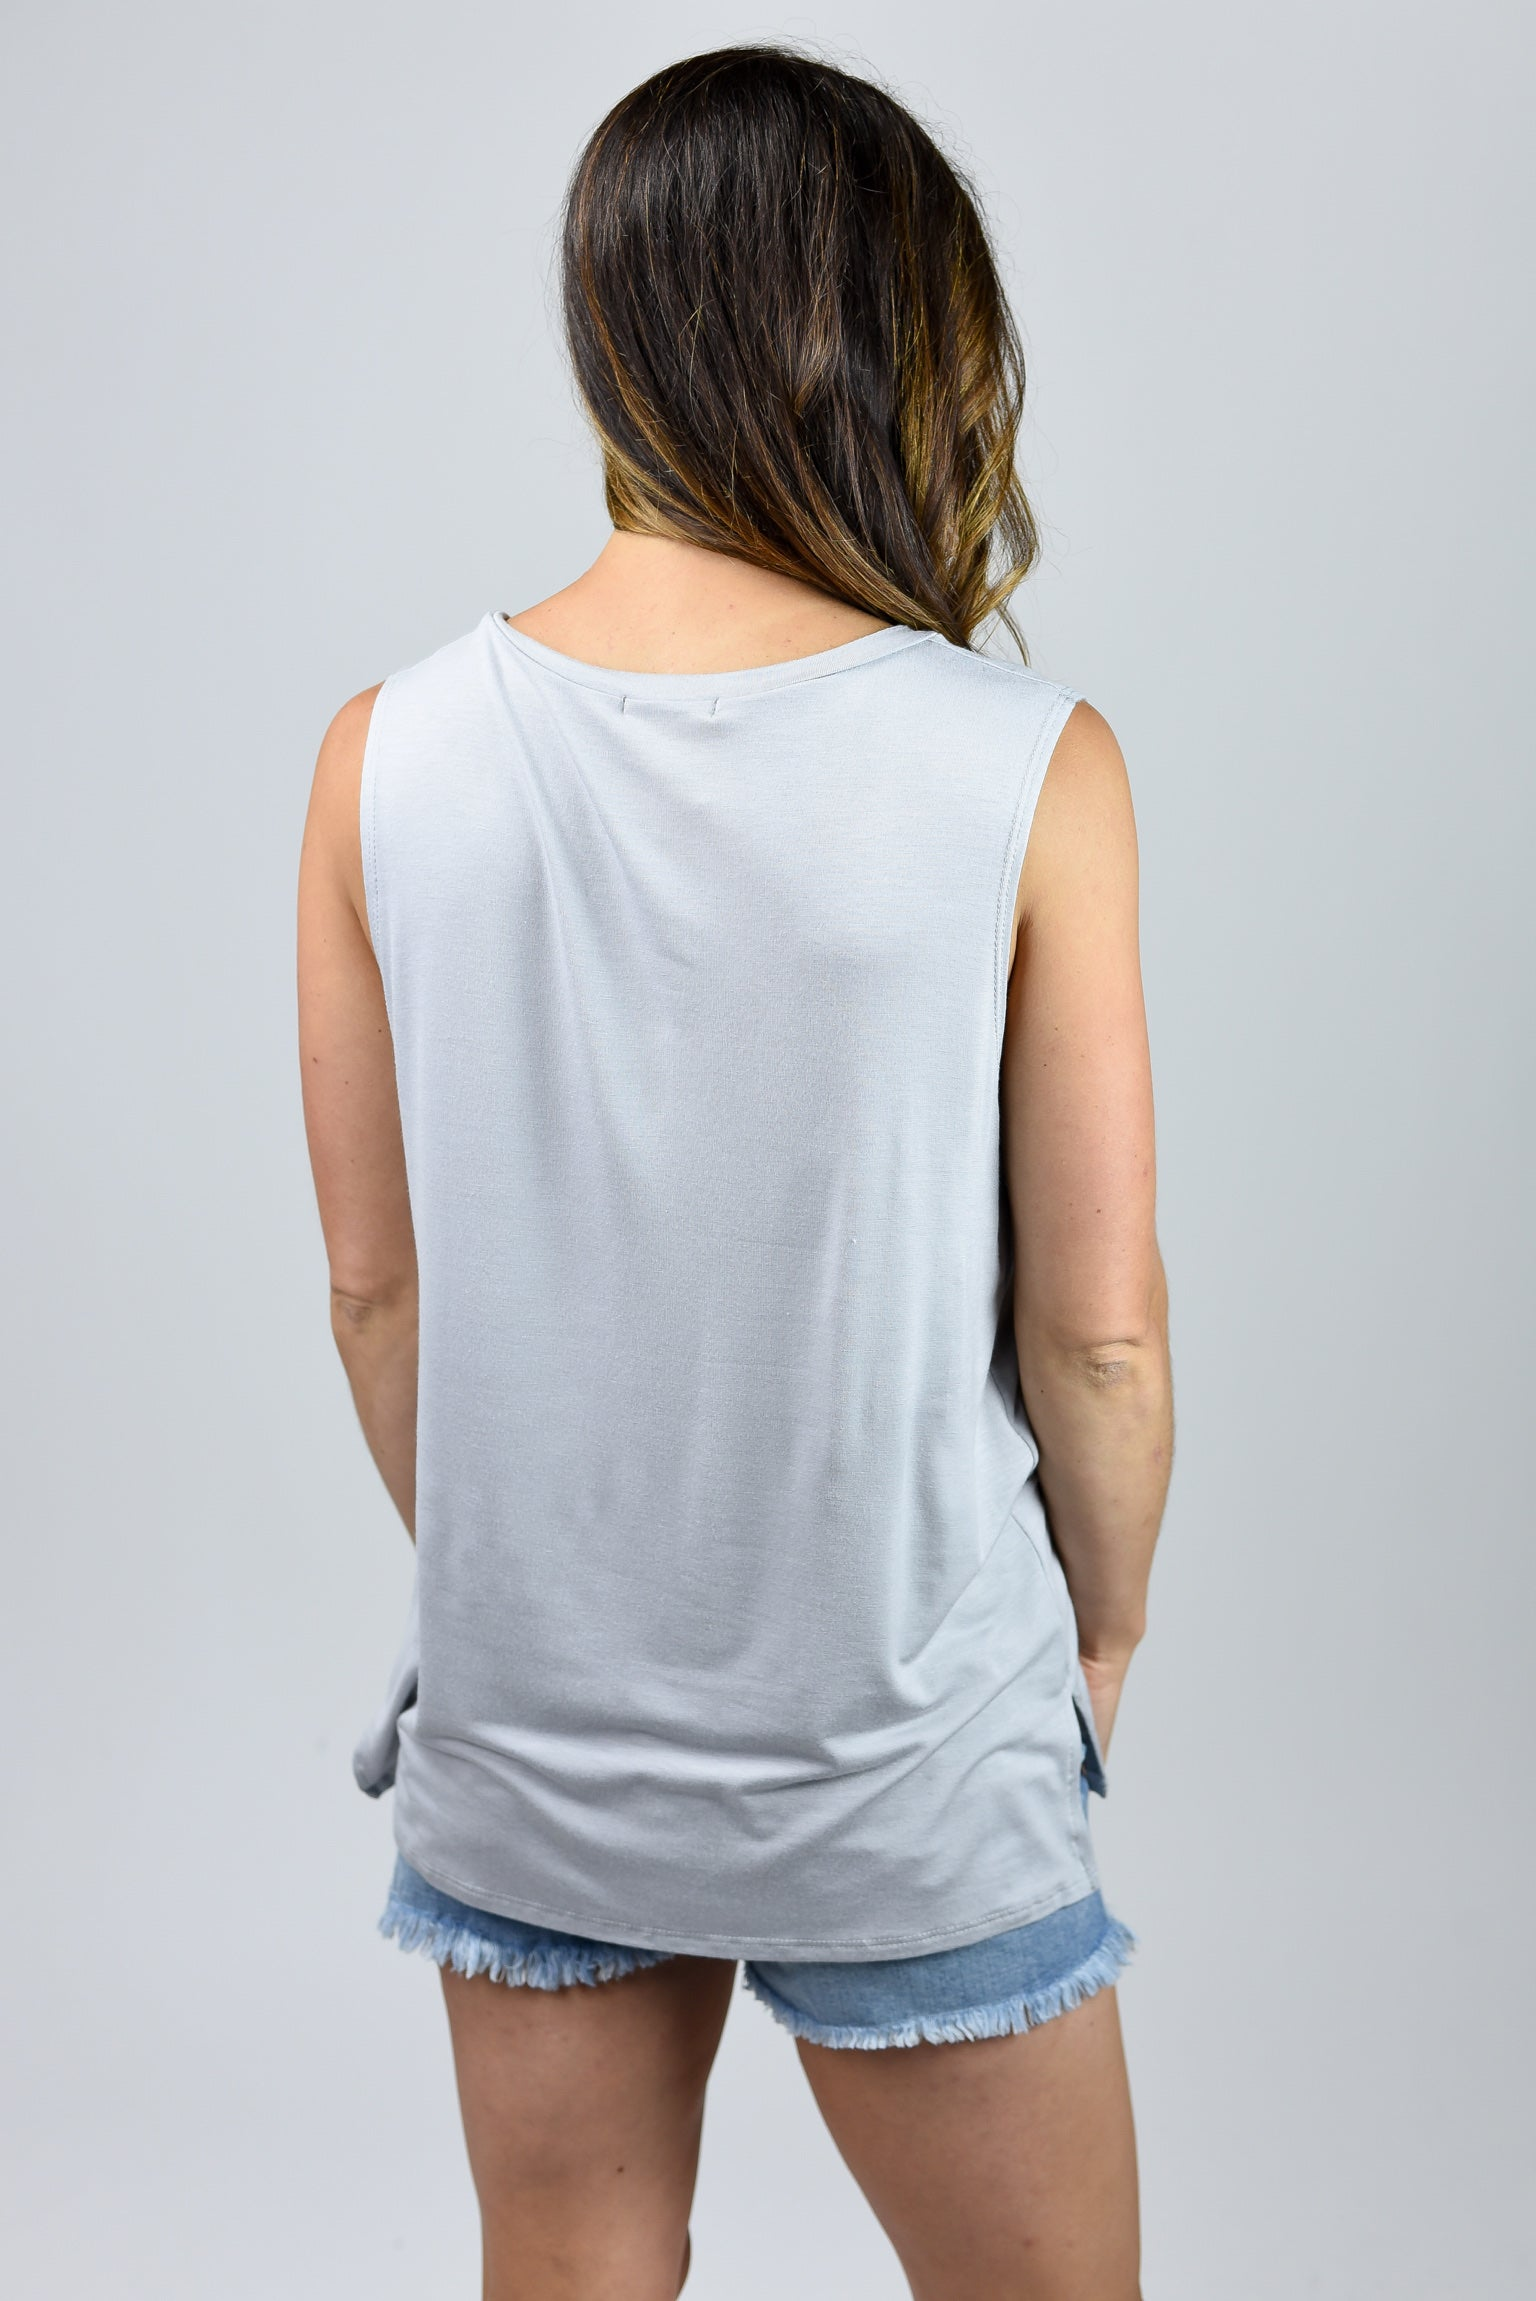 Easy Living Vneck Pocket Sleeveless Tee - Silver